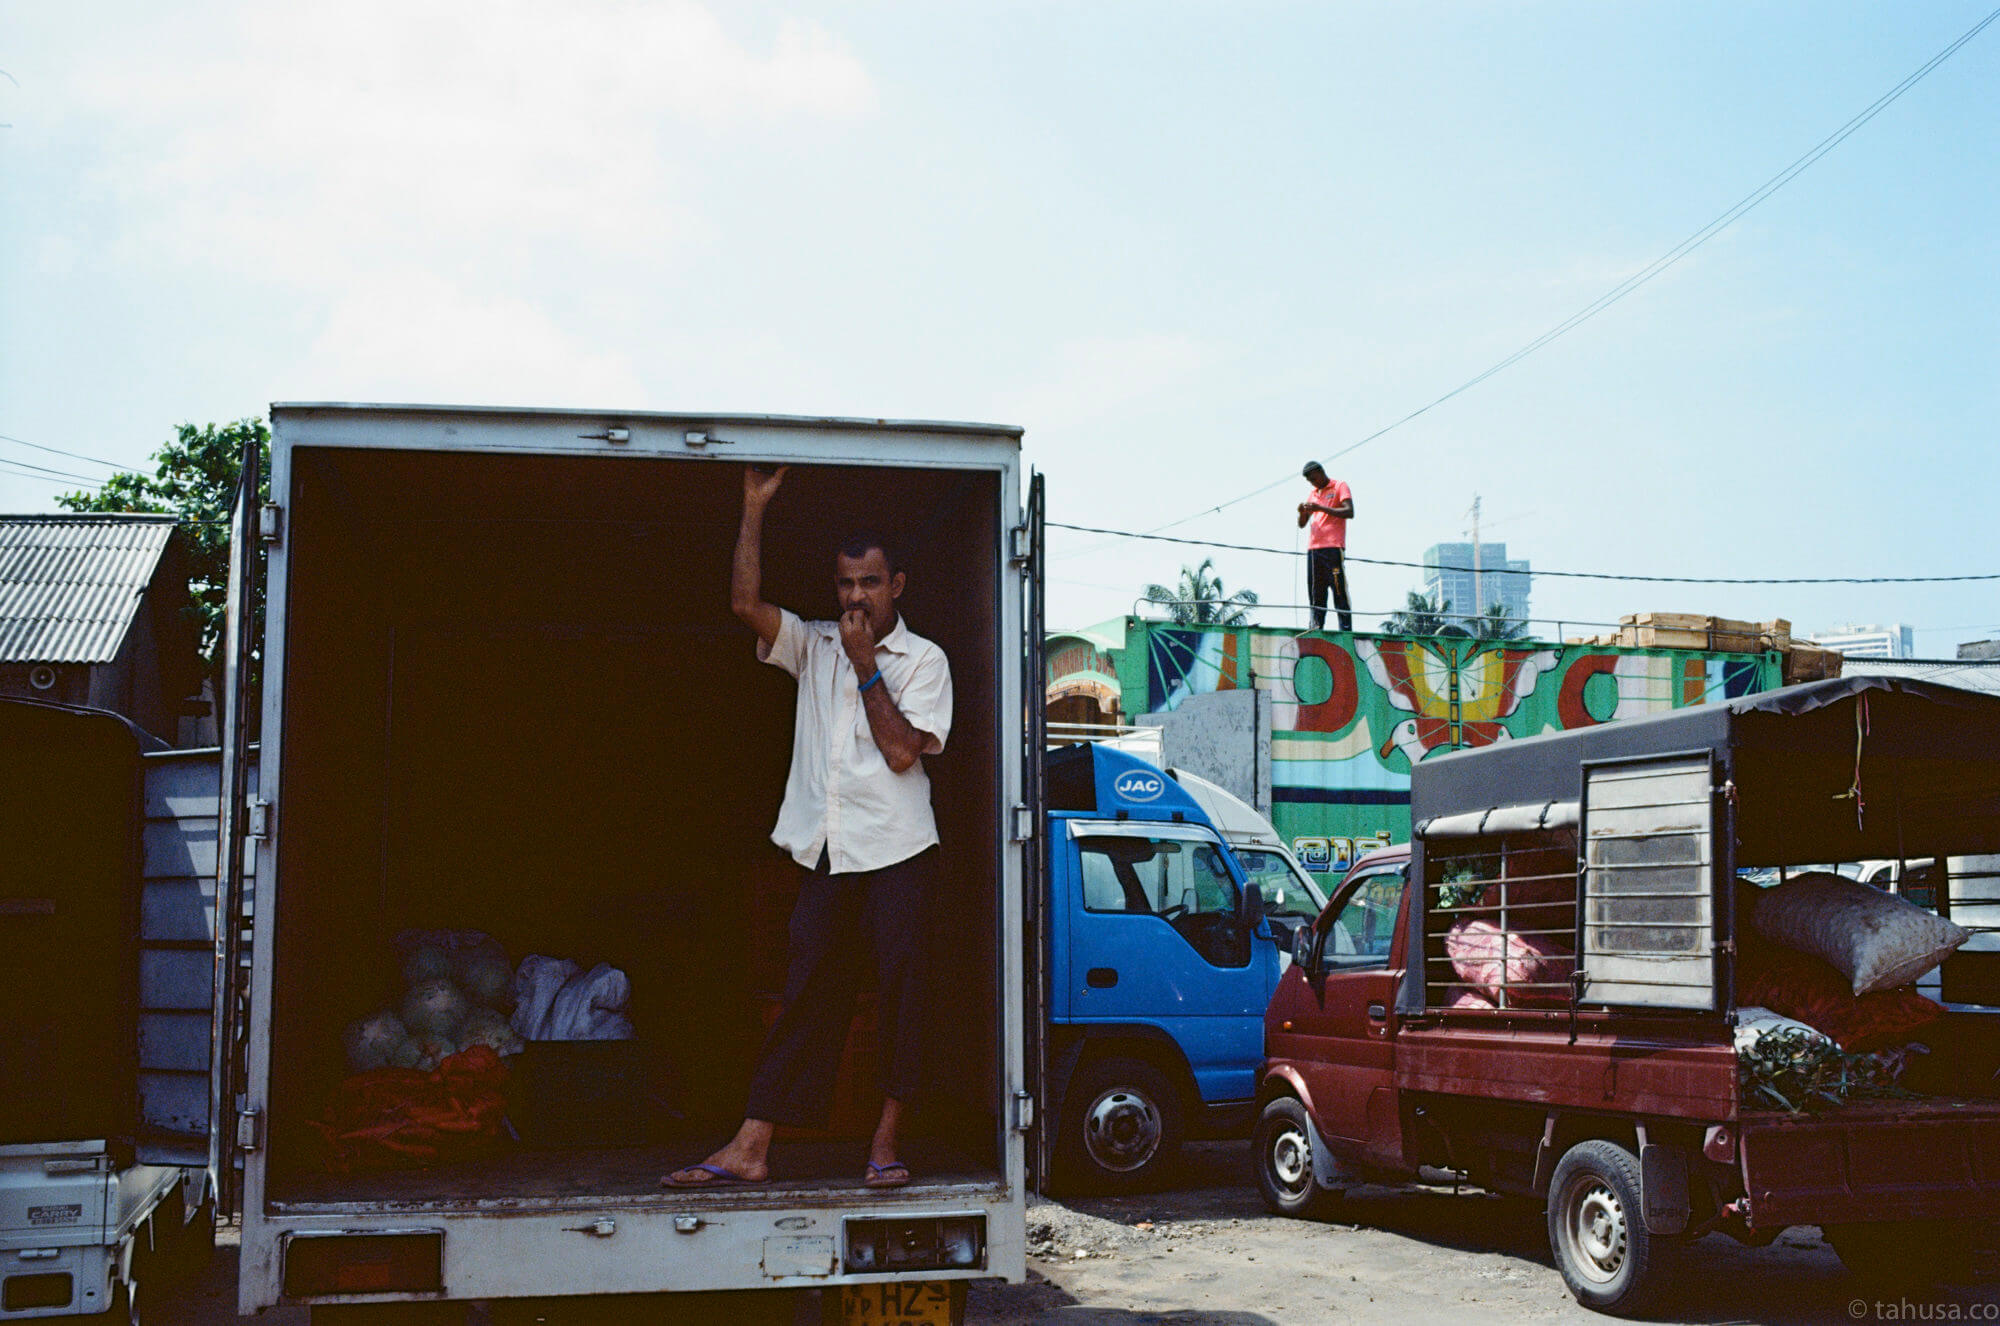 people-standing-inside-the-truck-and-the-other-men-standing-next-to-the-wire-in-colombo-sri-lanka-travel-photography-using-ektar-100-kodak-and-summilux-35mm-f1.4-asph-fle-leica-film